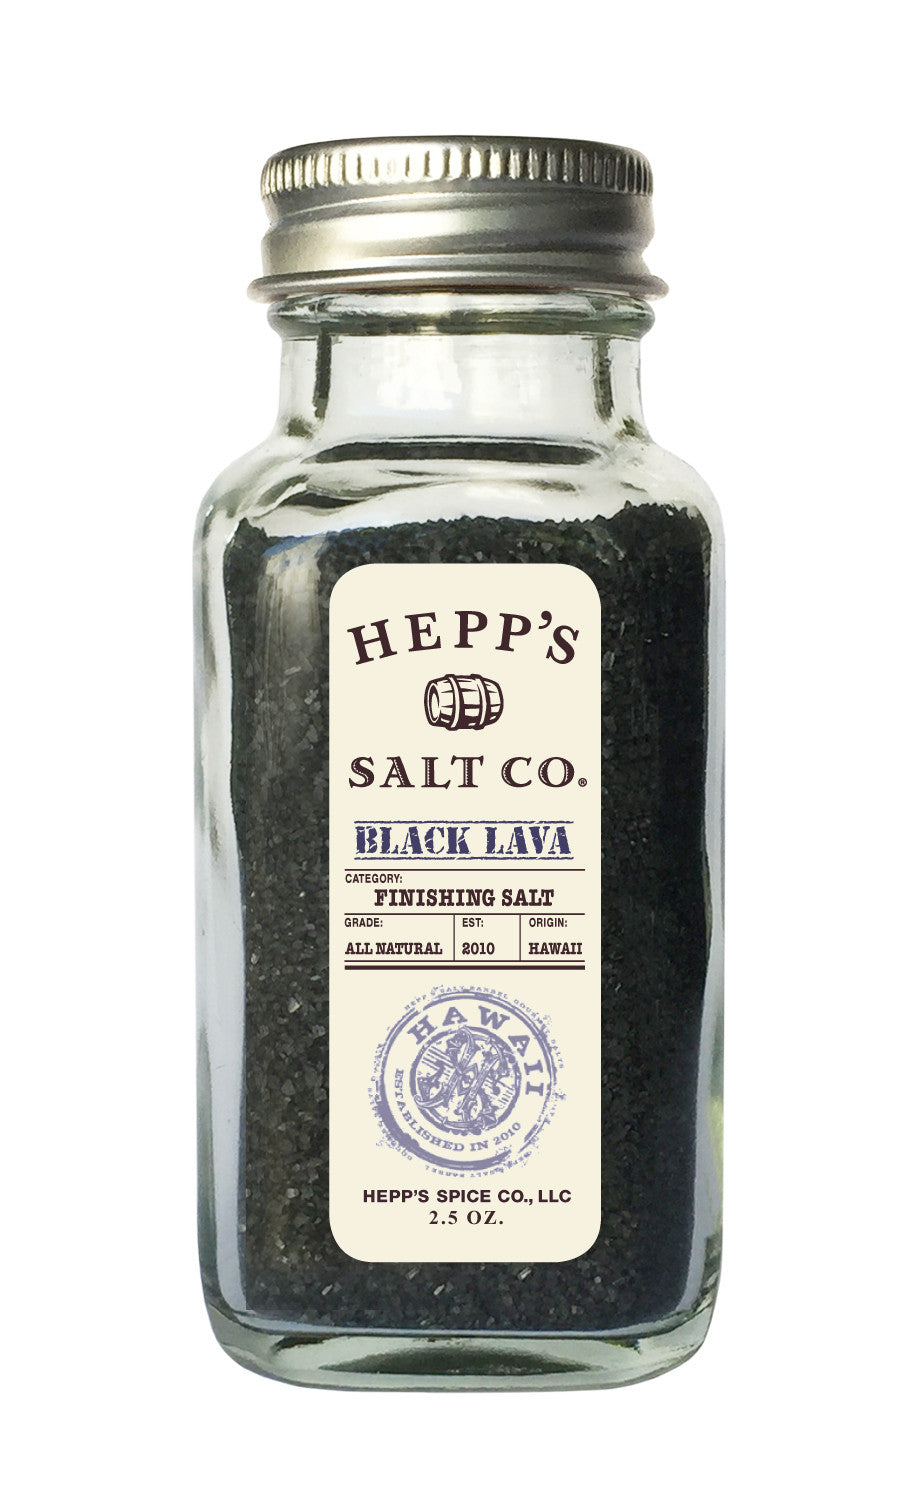 Black Lava Sea Salt - HEPPS SALT CO.